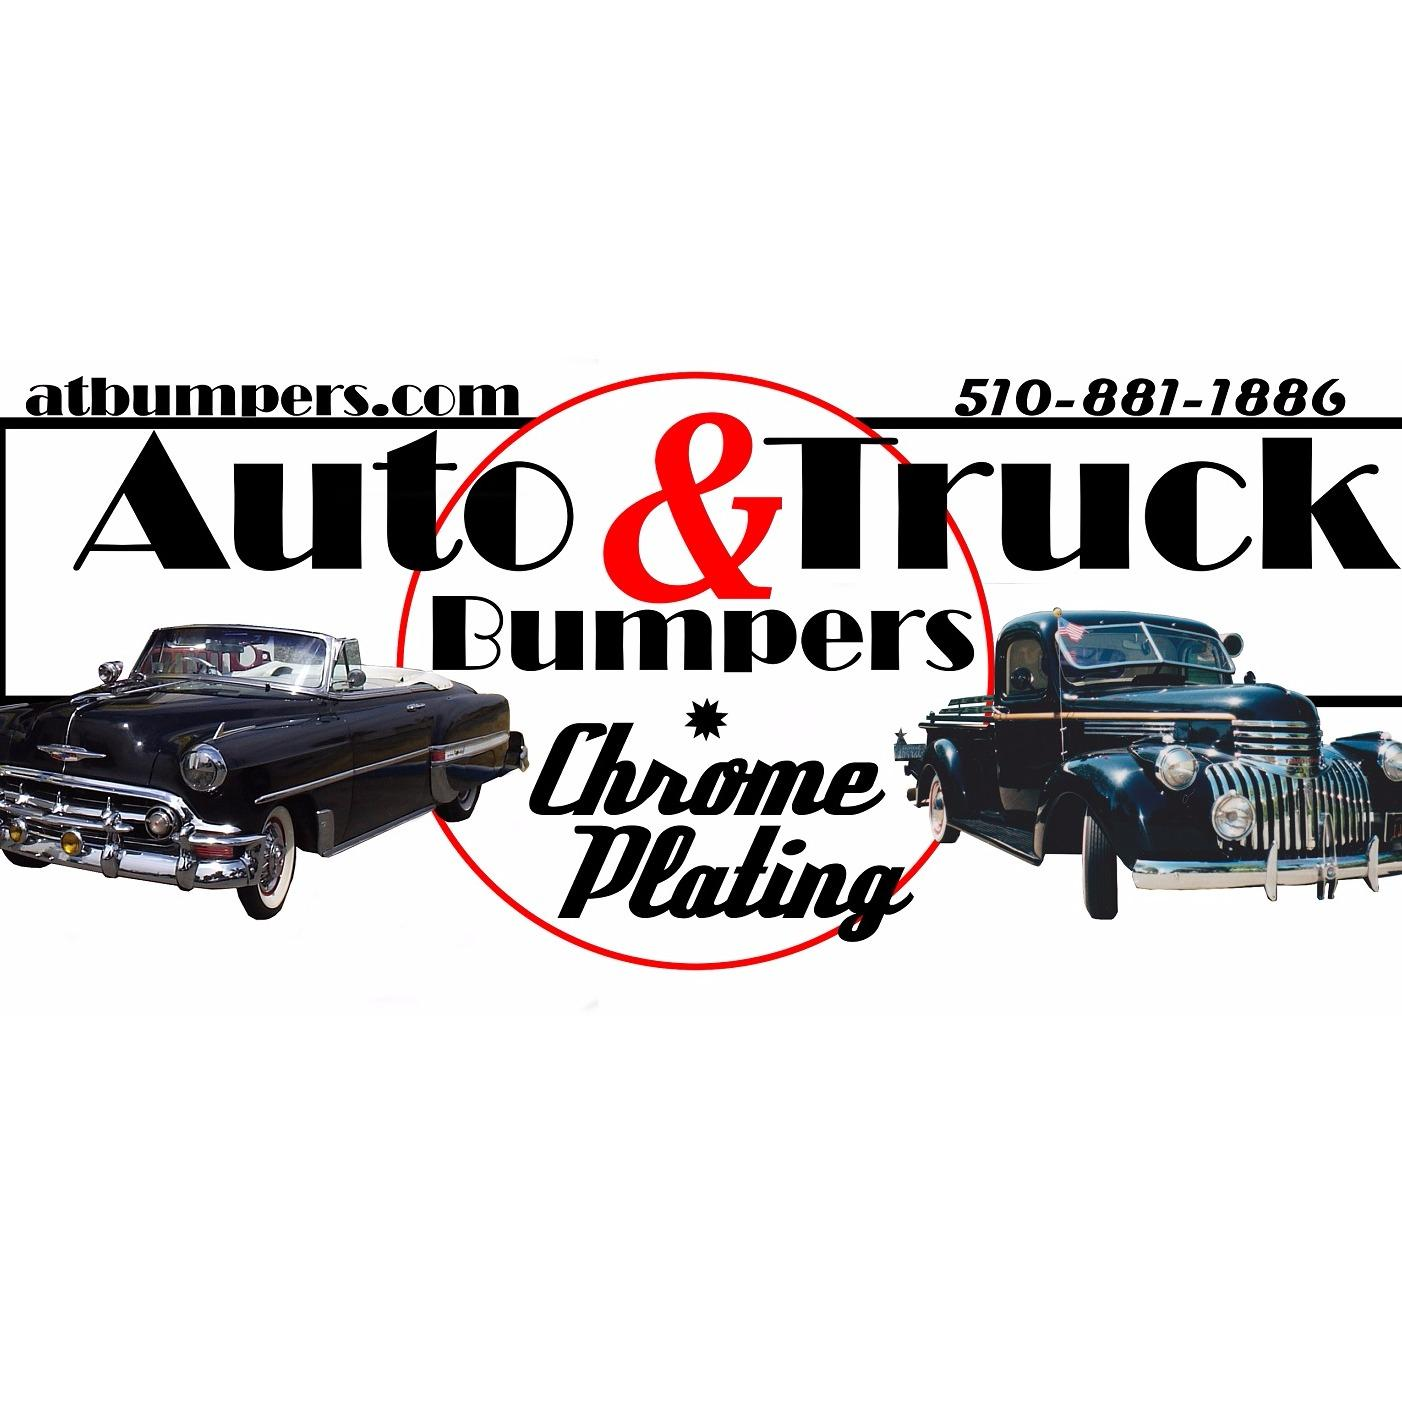 Auto & Truck Bumpers Recyclers, Inc